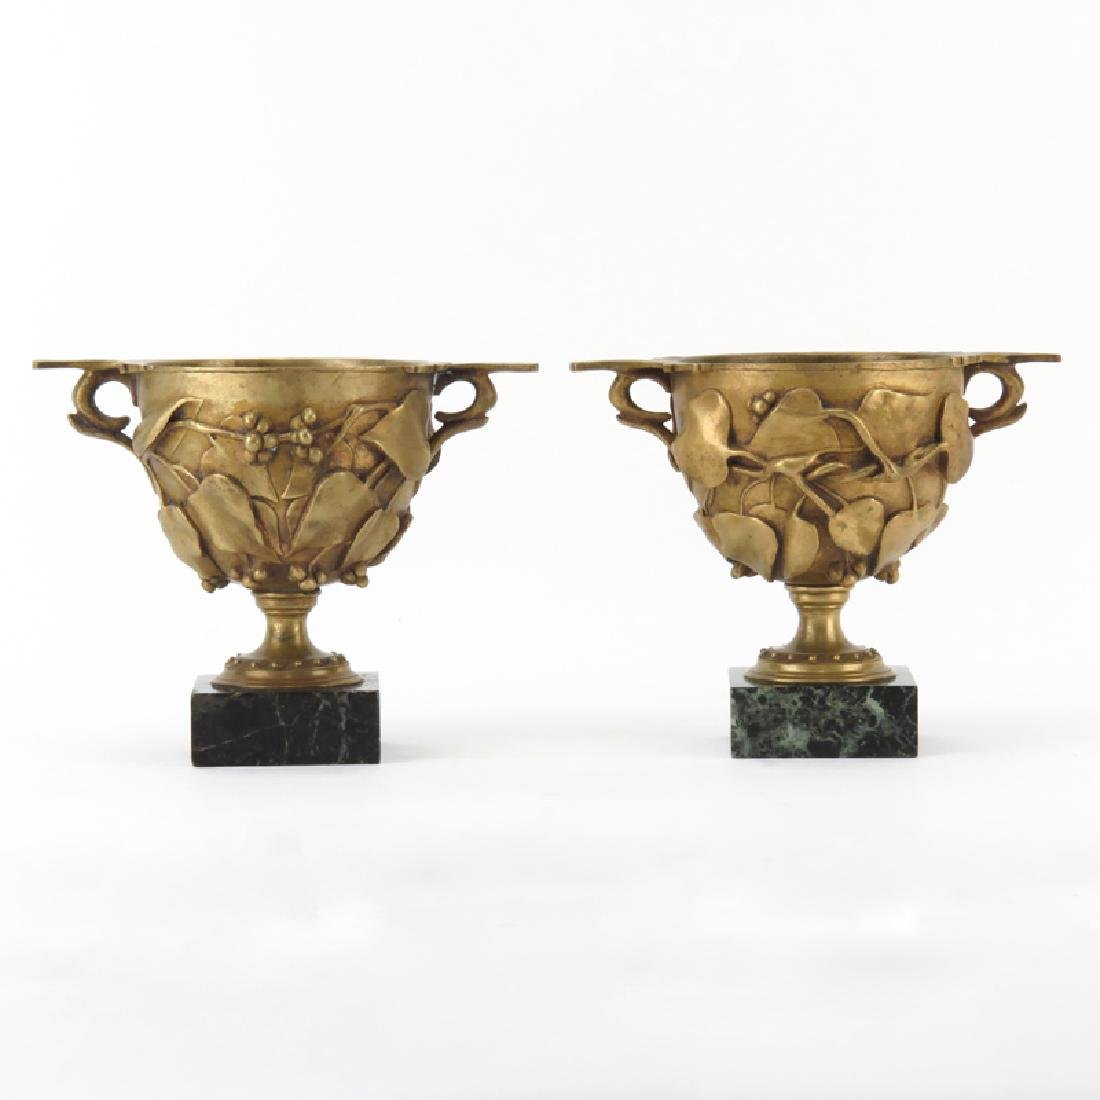 Pair of French Early 20th Bronze Urns on Marble Base.